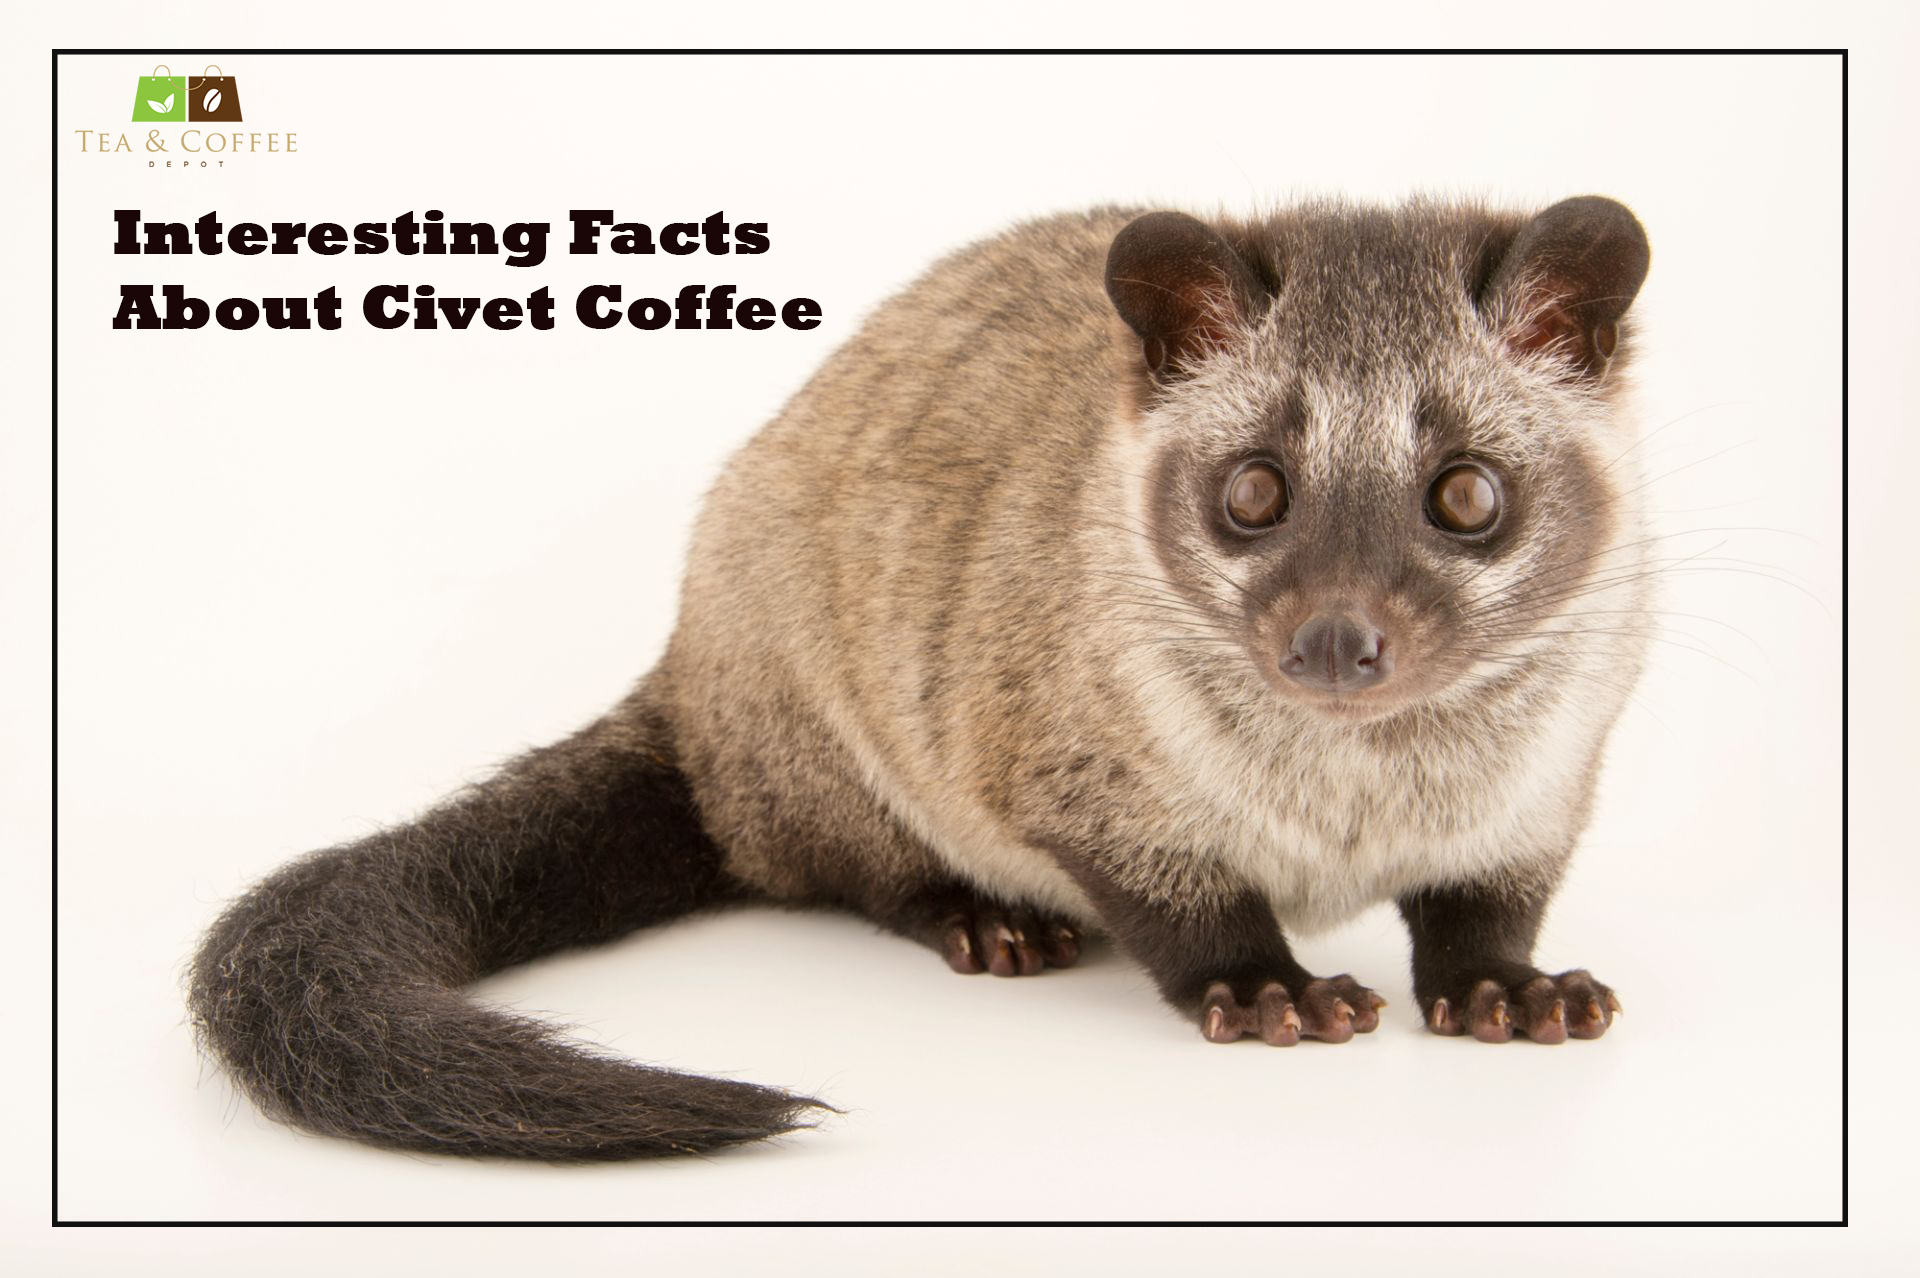 interesting-facts-about-civet-coffee-609b6d548a76a.jpg